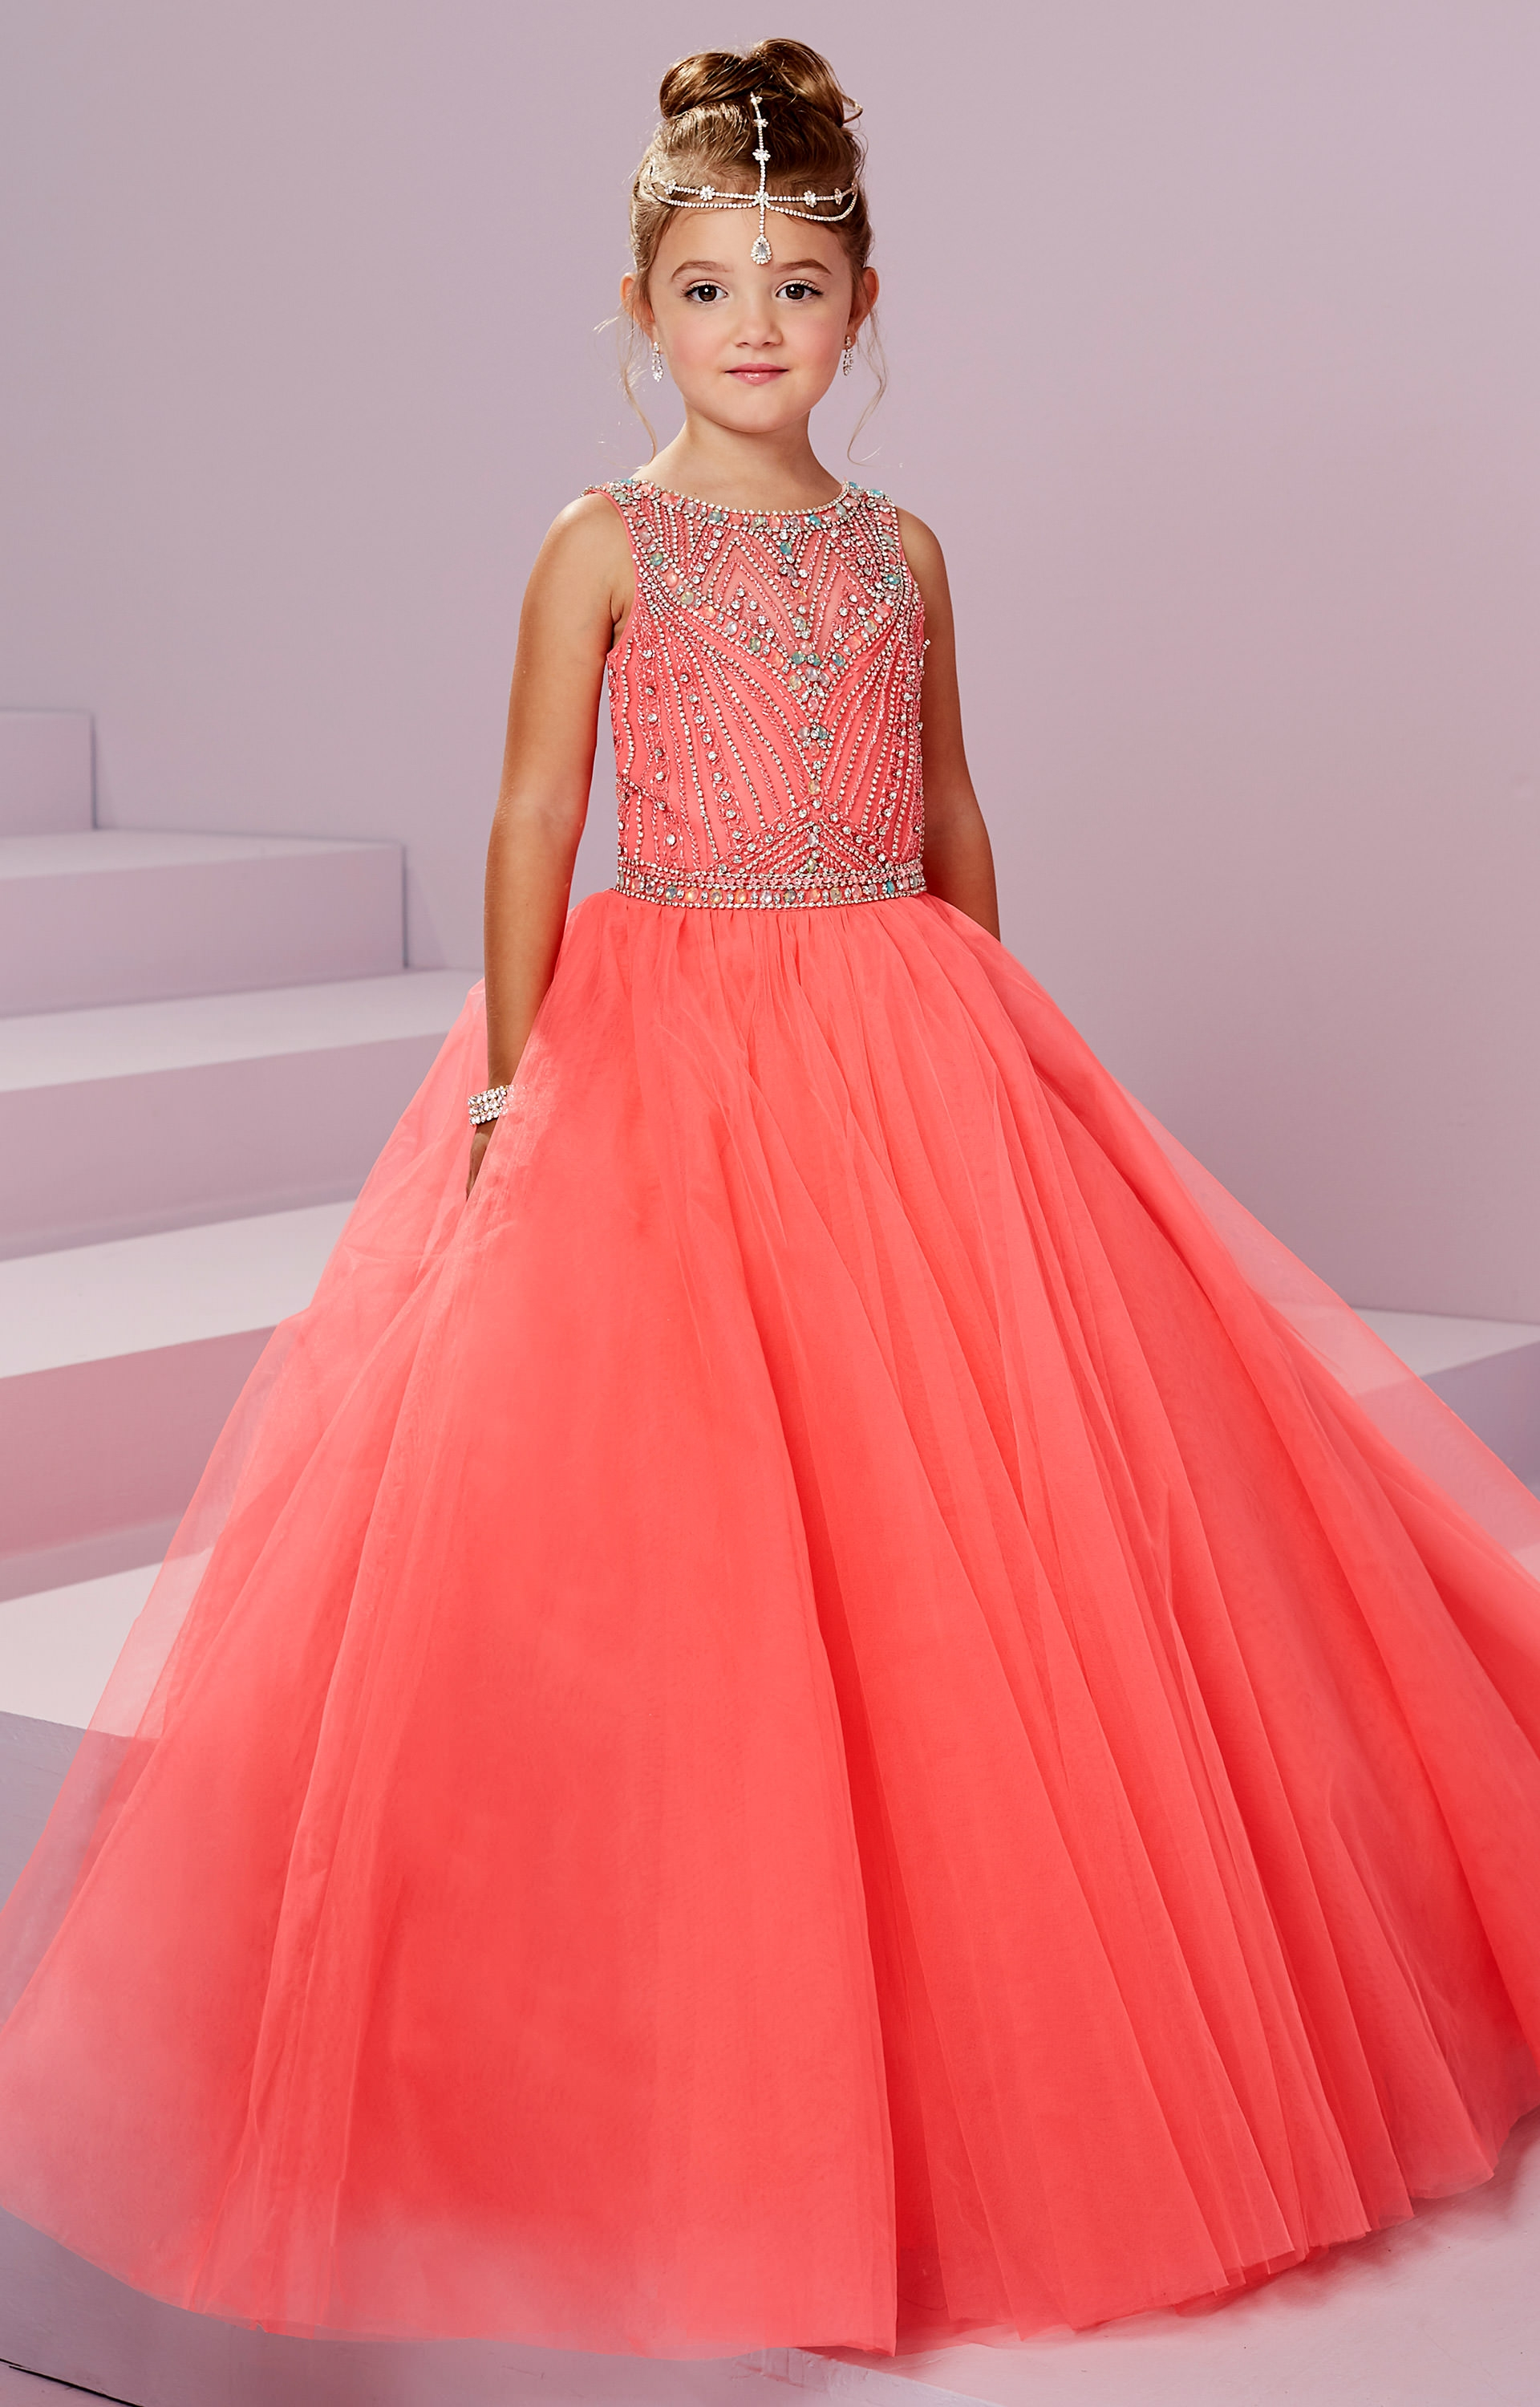 Tiffany Princess 13489 Beaded Halter Tulle Ball Gown